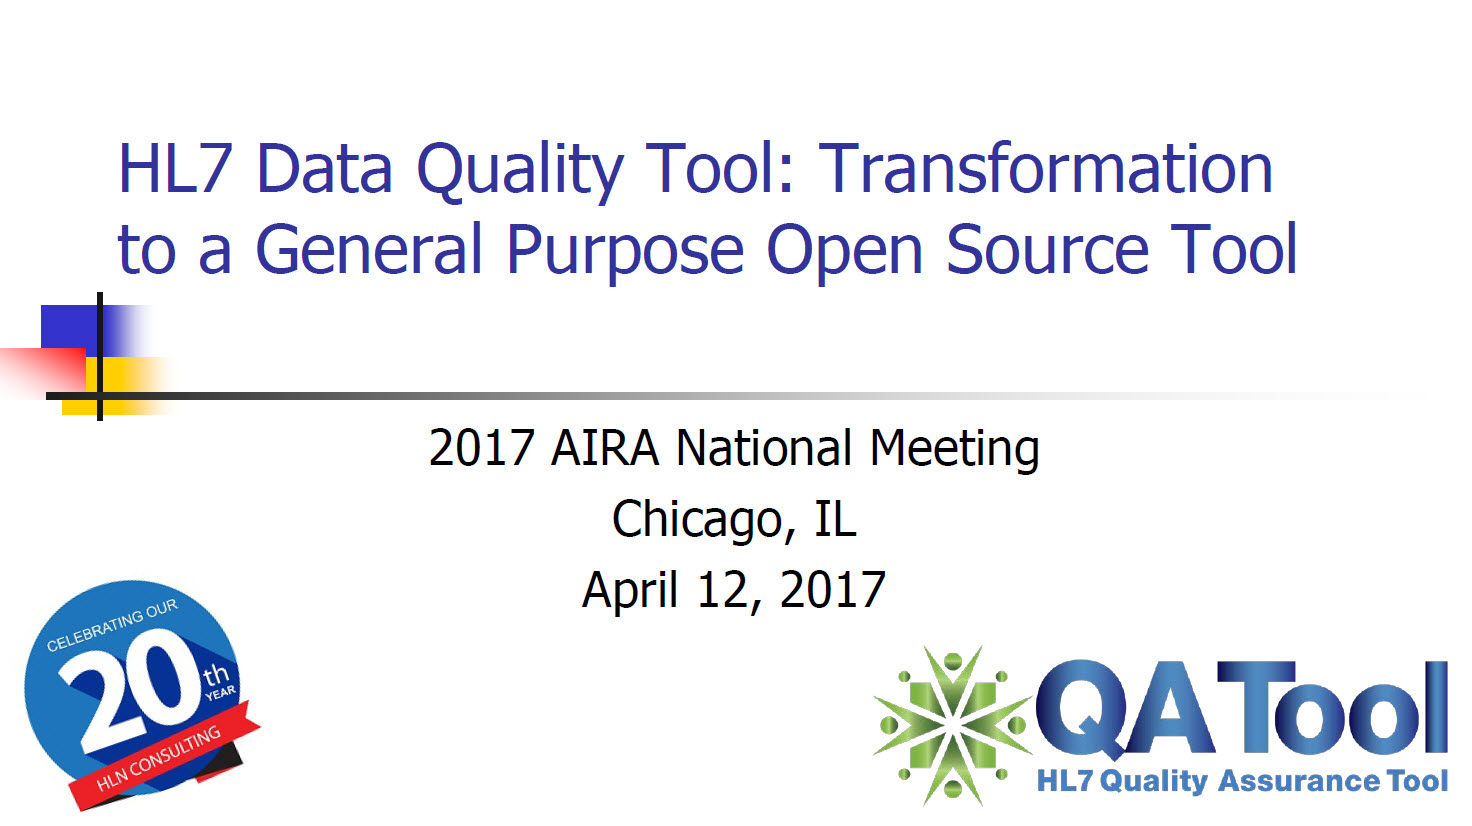 HL7 Data Quality Tool: Transformation to a General Purpose Open- Source Tool